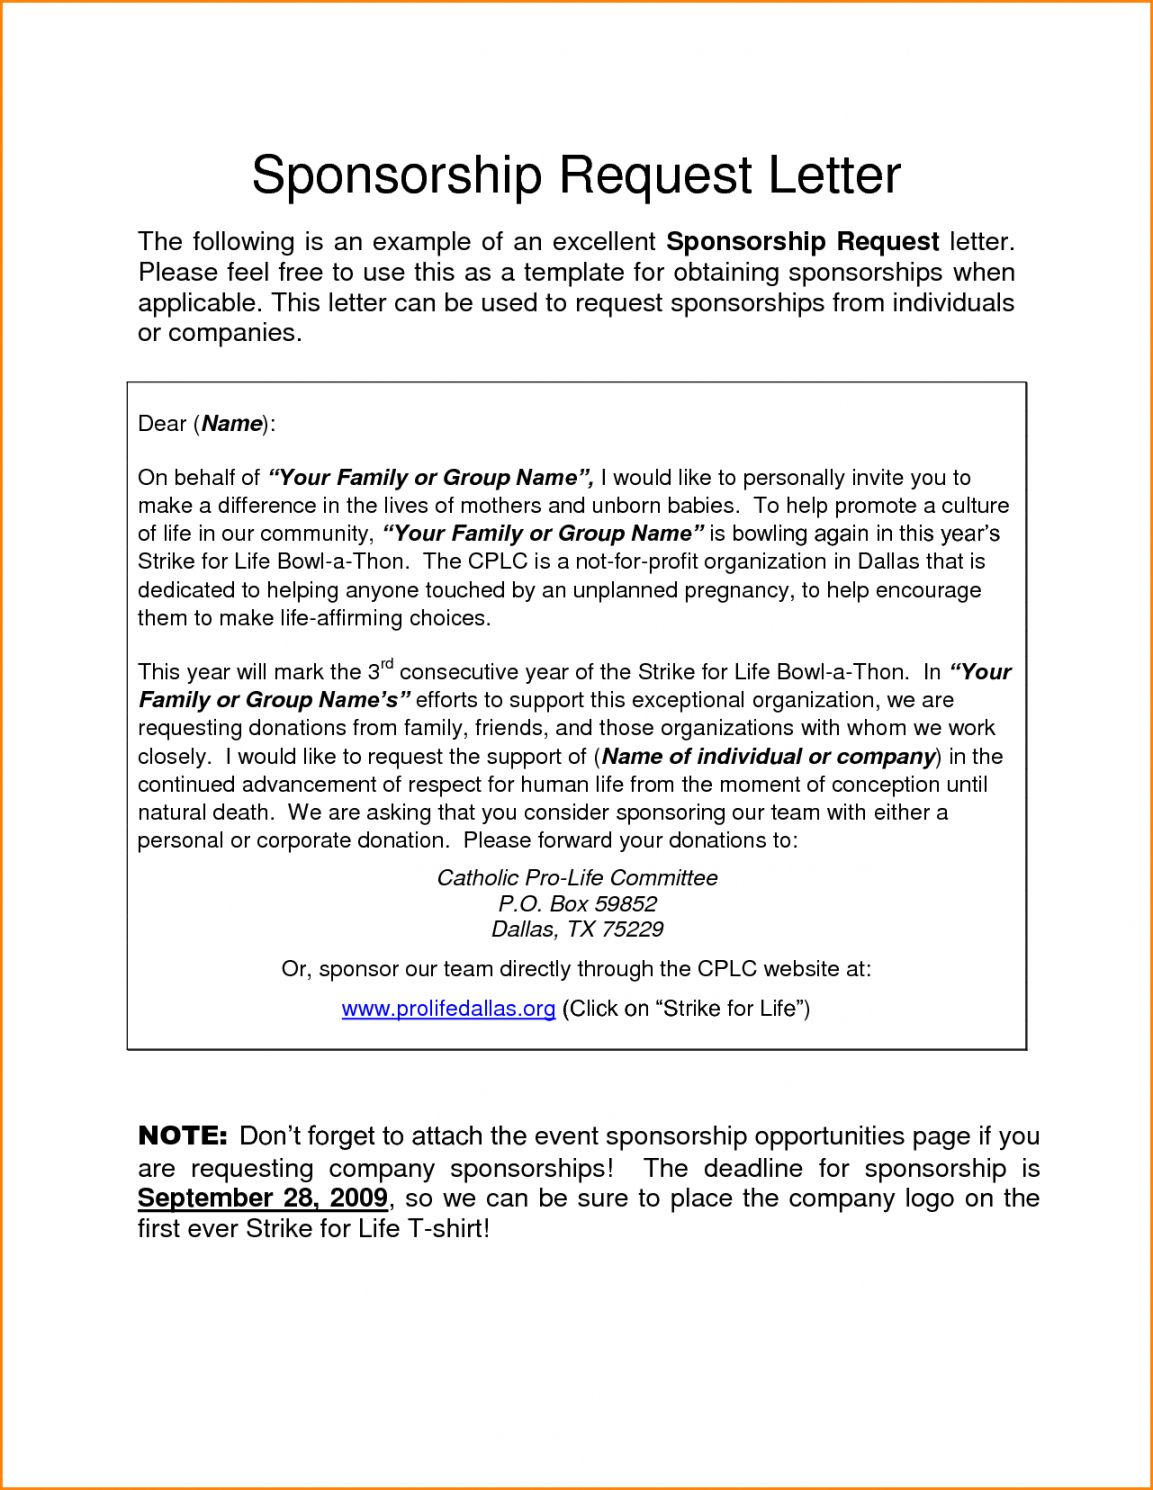 Sponsorship Letter Sample Mple Request Letters Requesting Scholarship Fundraising Letter Word Request Letter Sponsorship Letter Donation Request Letters